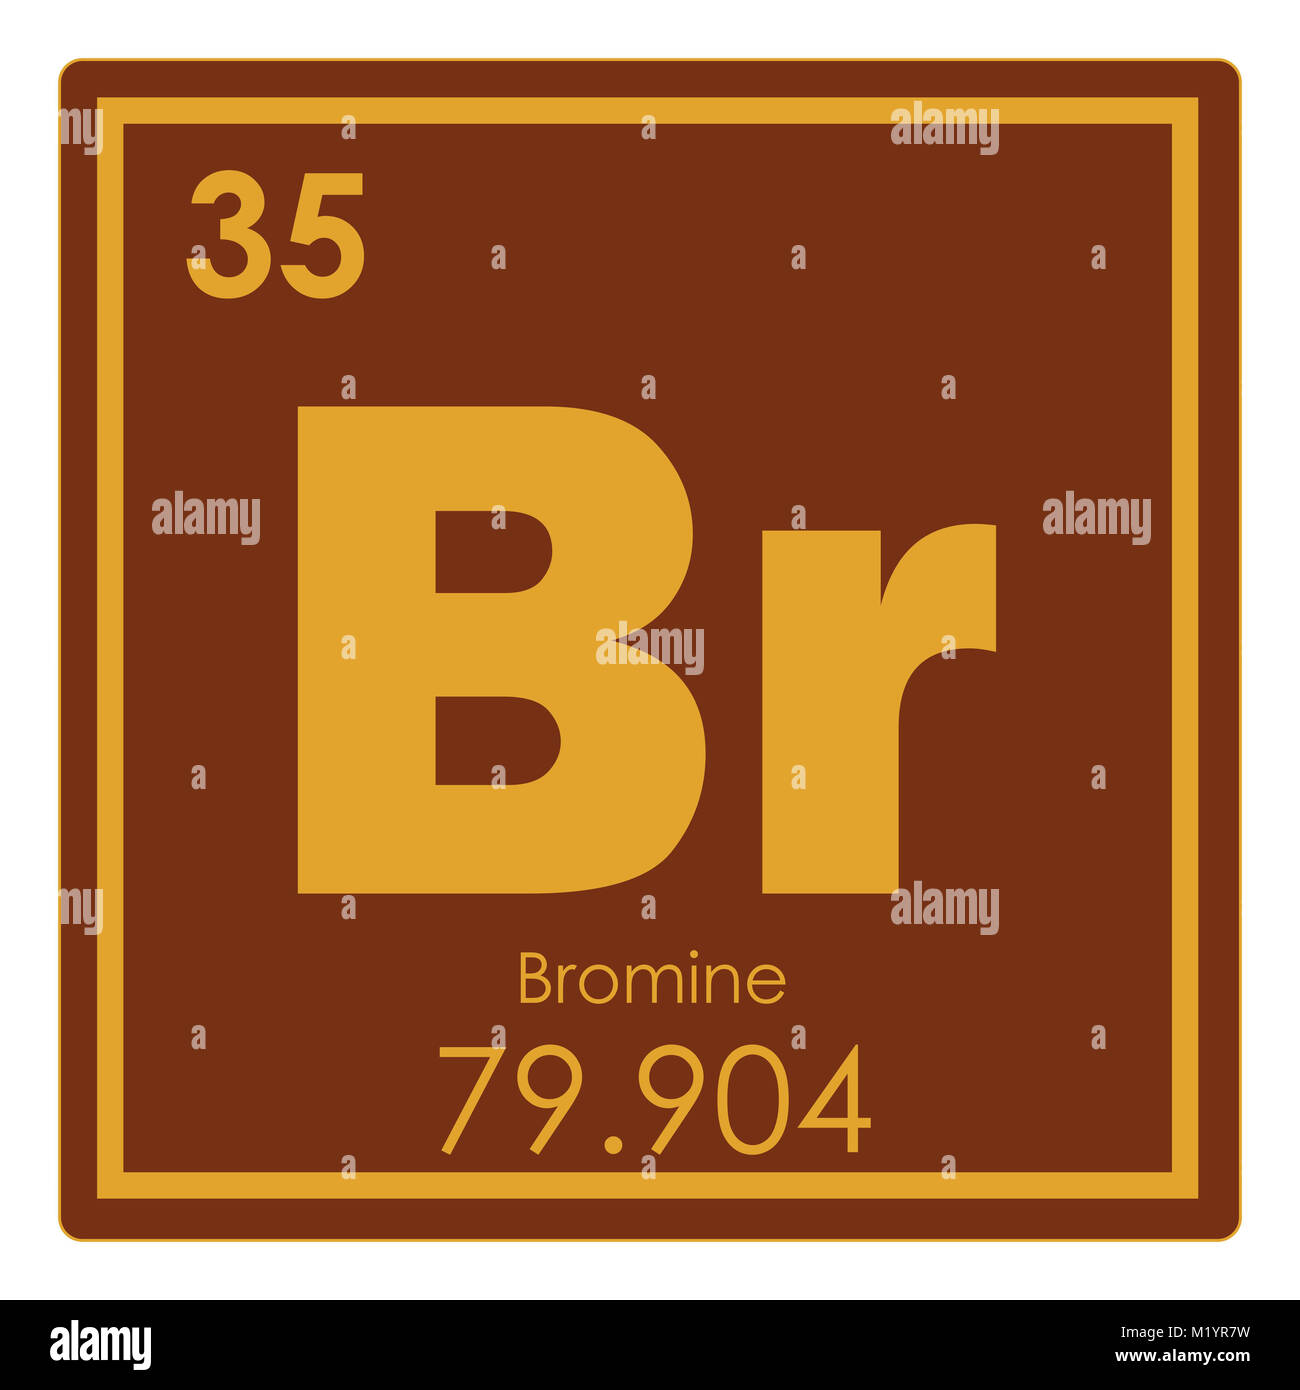 Bromine chemical element periodic table science symbol stock photo bromine chemical element periodic table science symbol urtaz